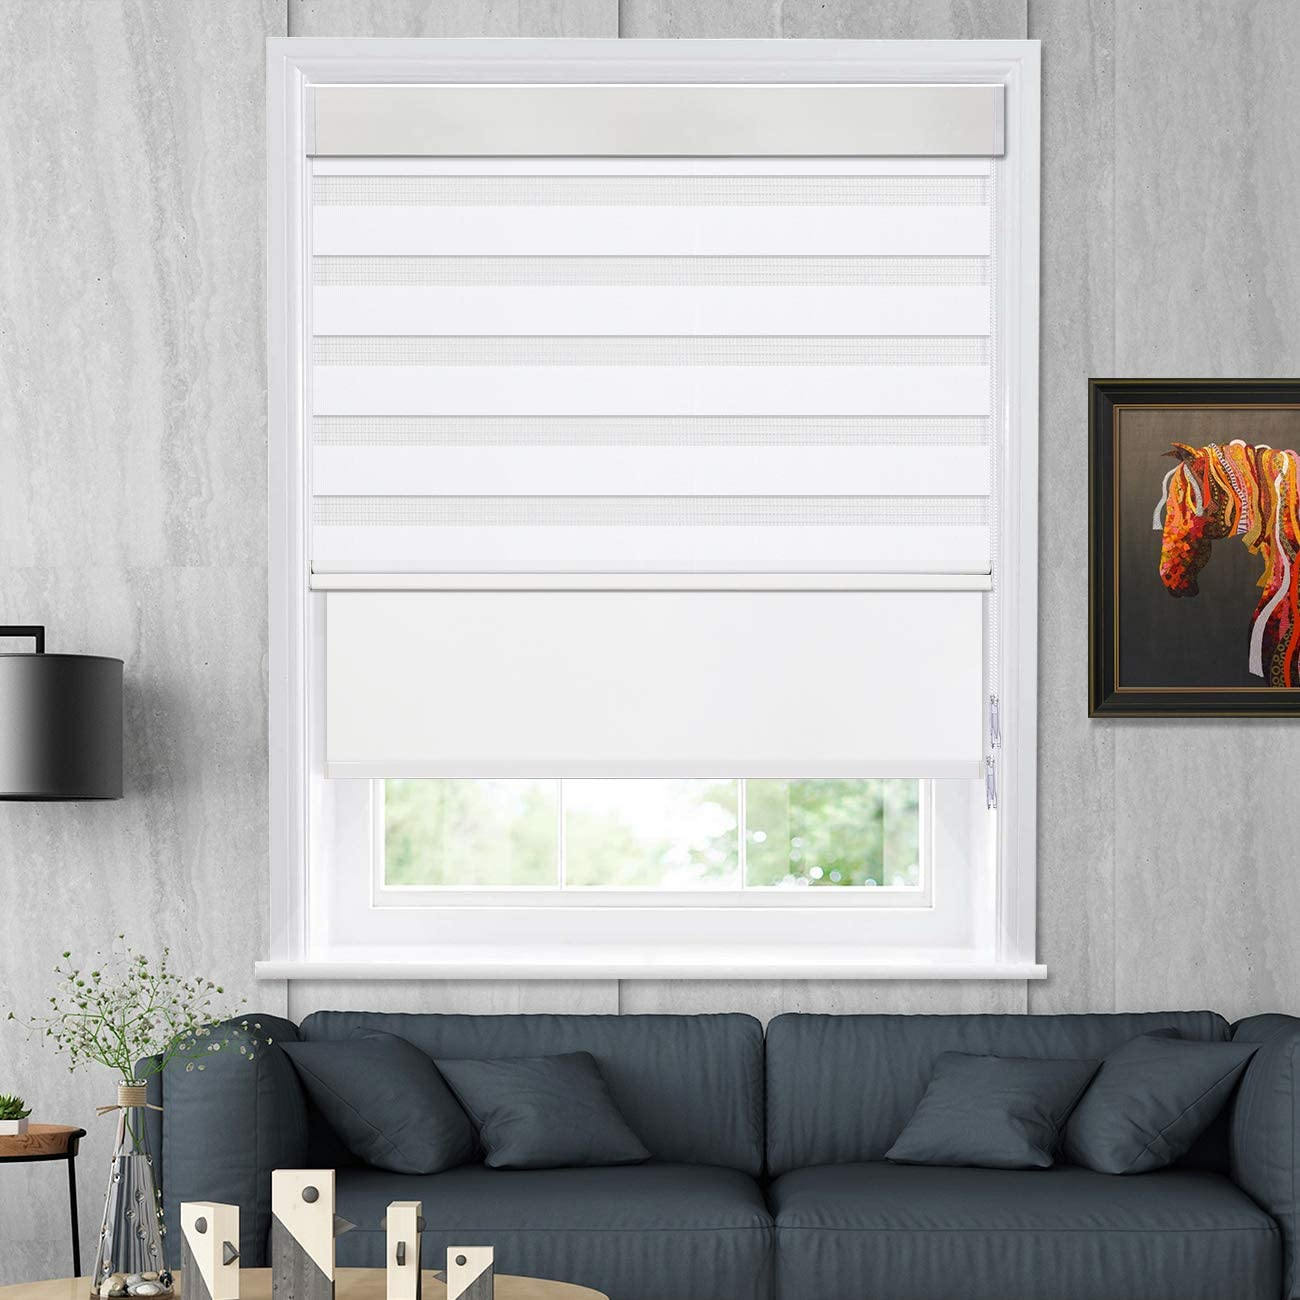 Keego Sales for sale Max 58% OFF Double Roller Shades Combine Blin Free Control Light Zebra